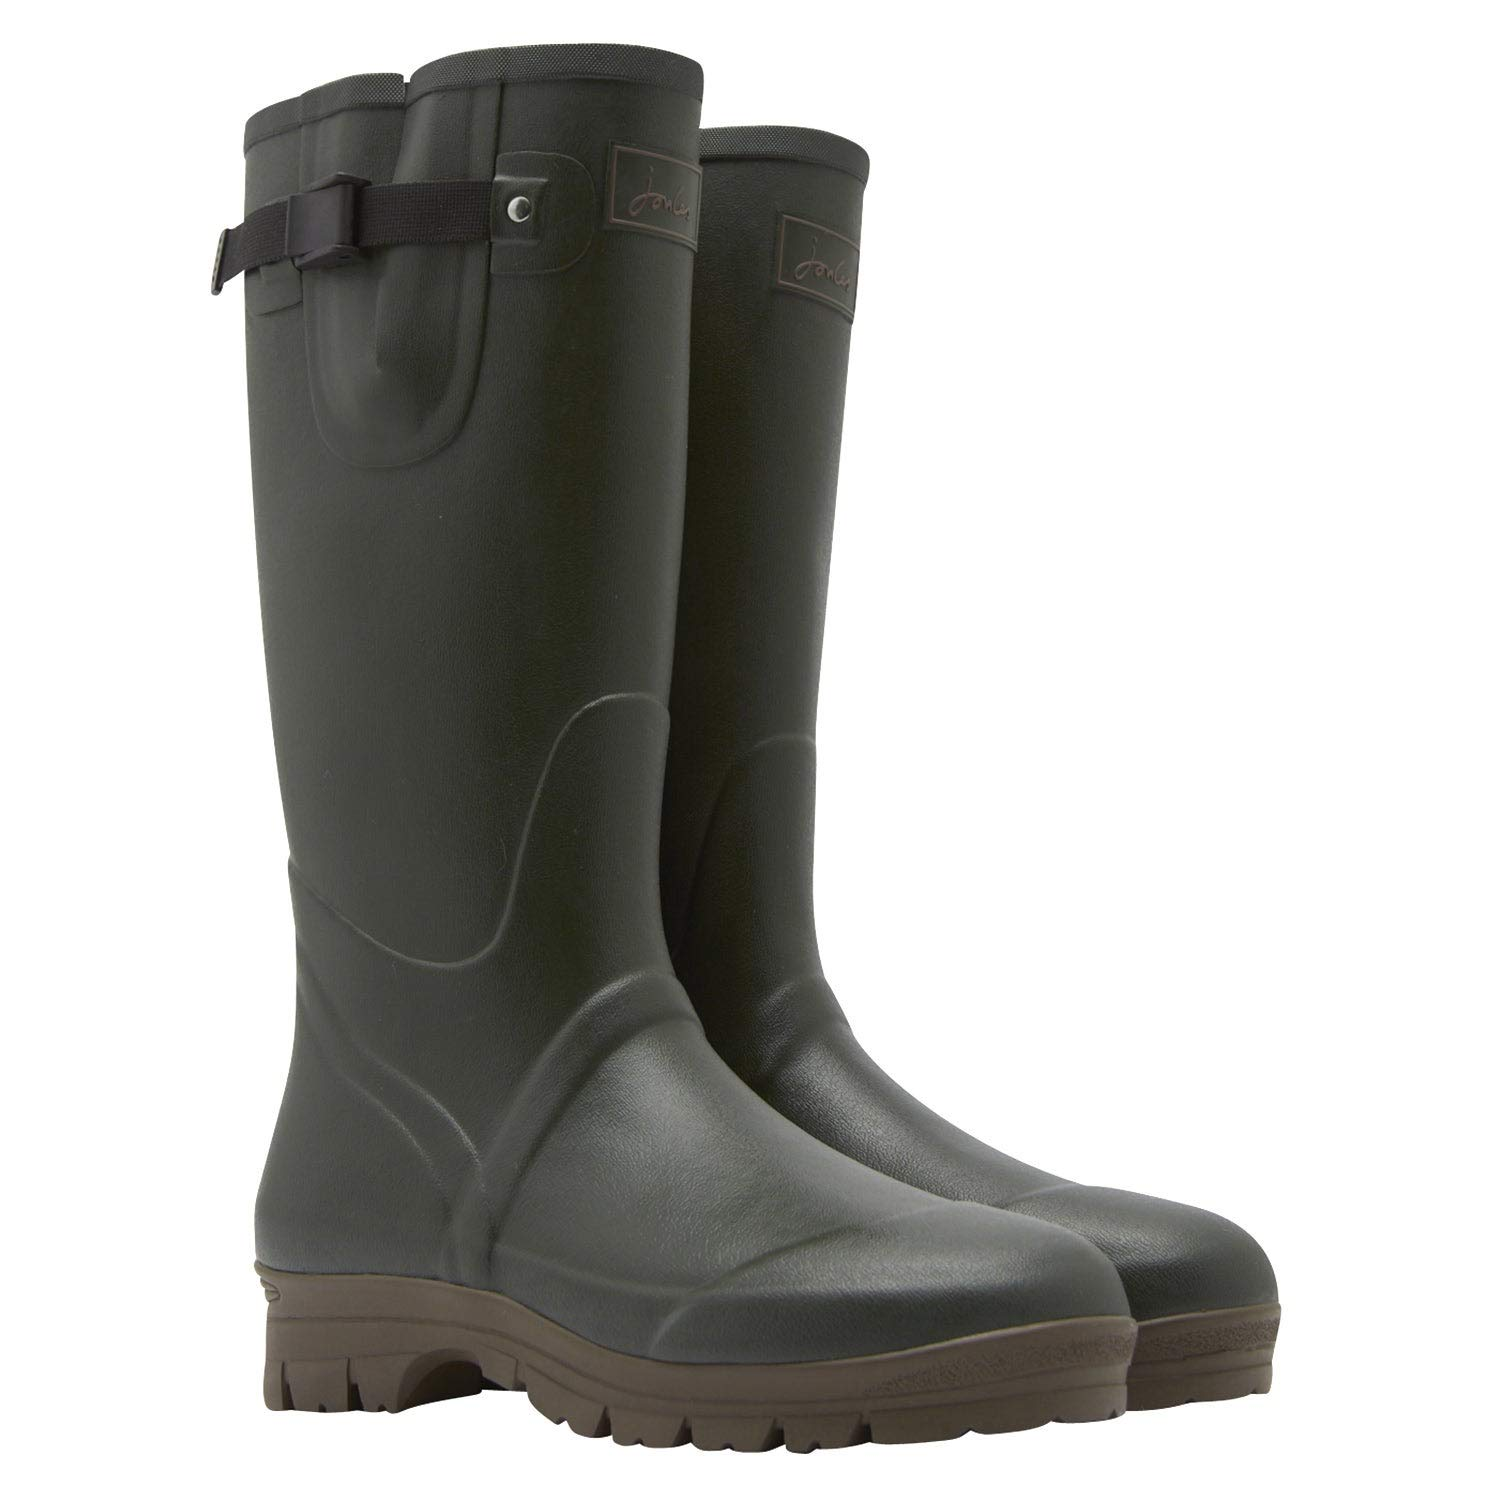 Buy Joules Field Wellington Boots at Amazon.in